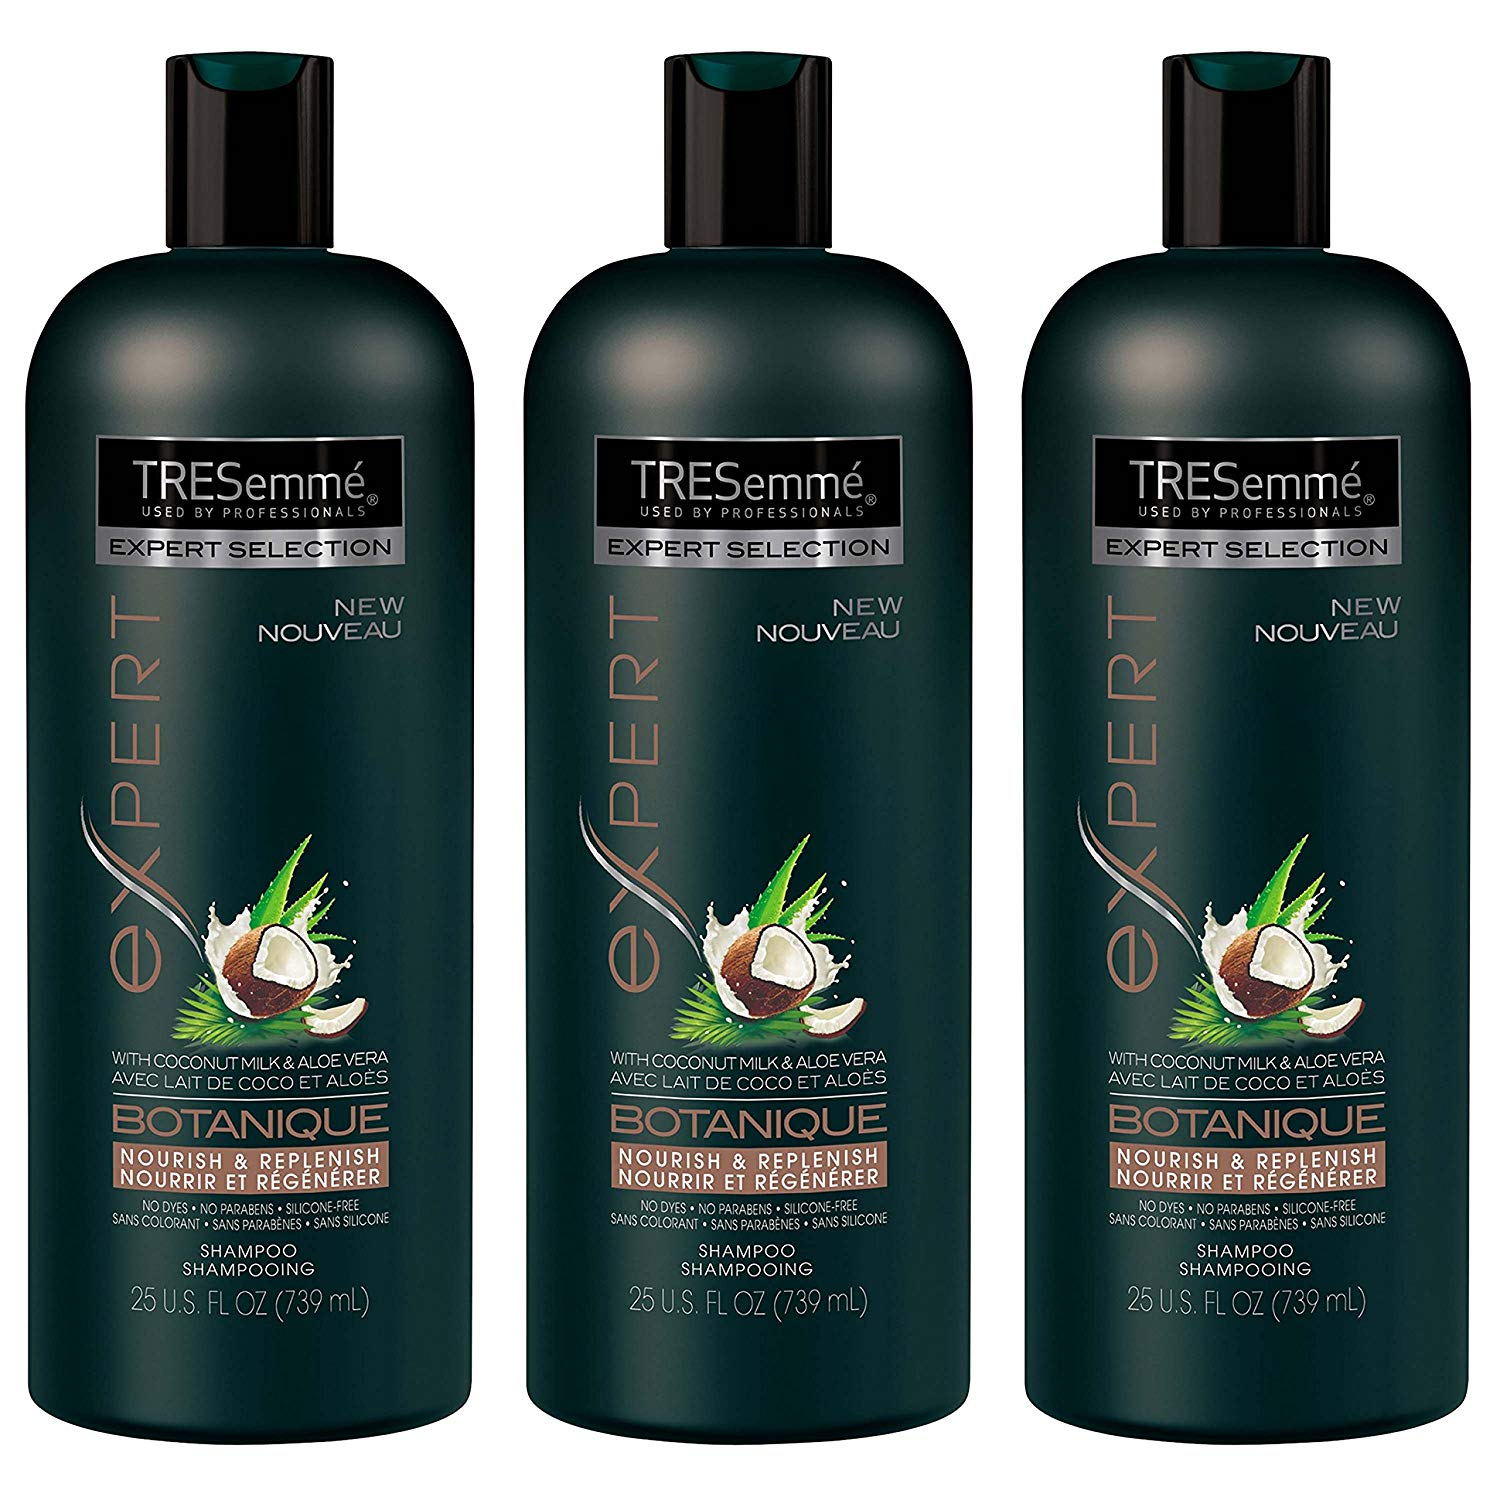 Best drugstore beauty products Tresemme shampoo